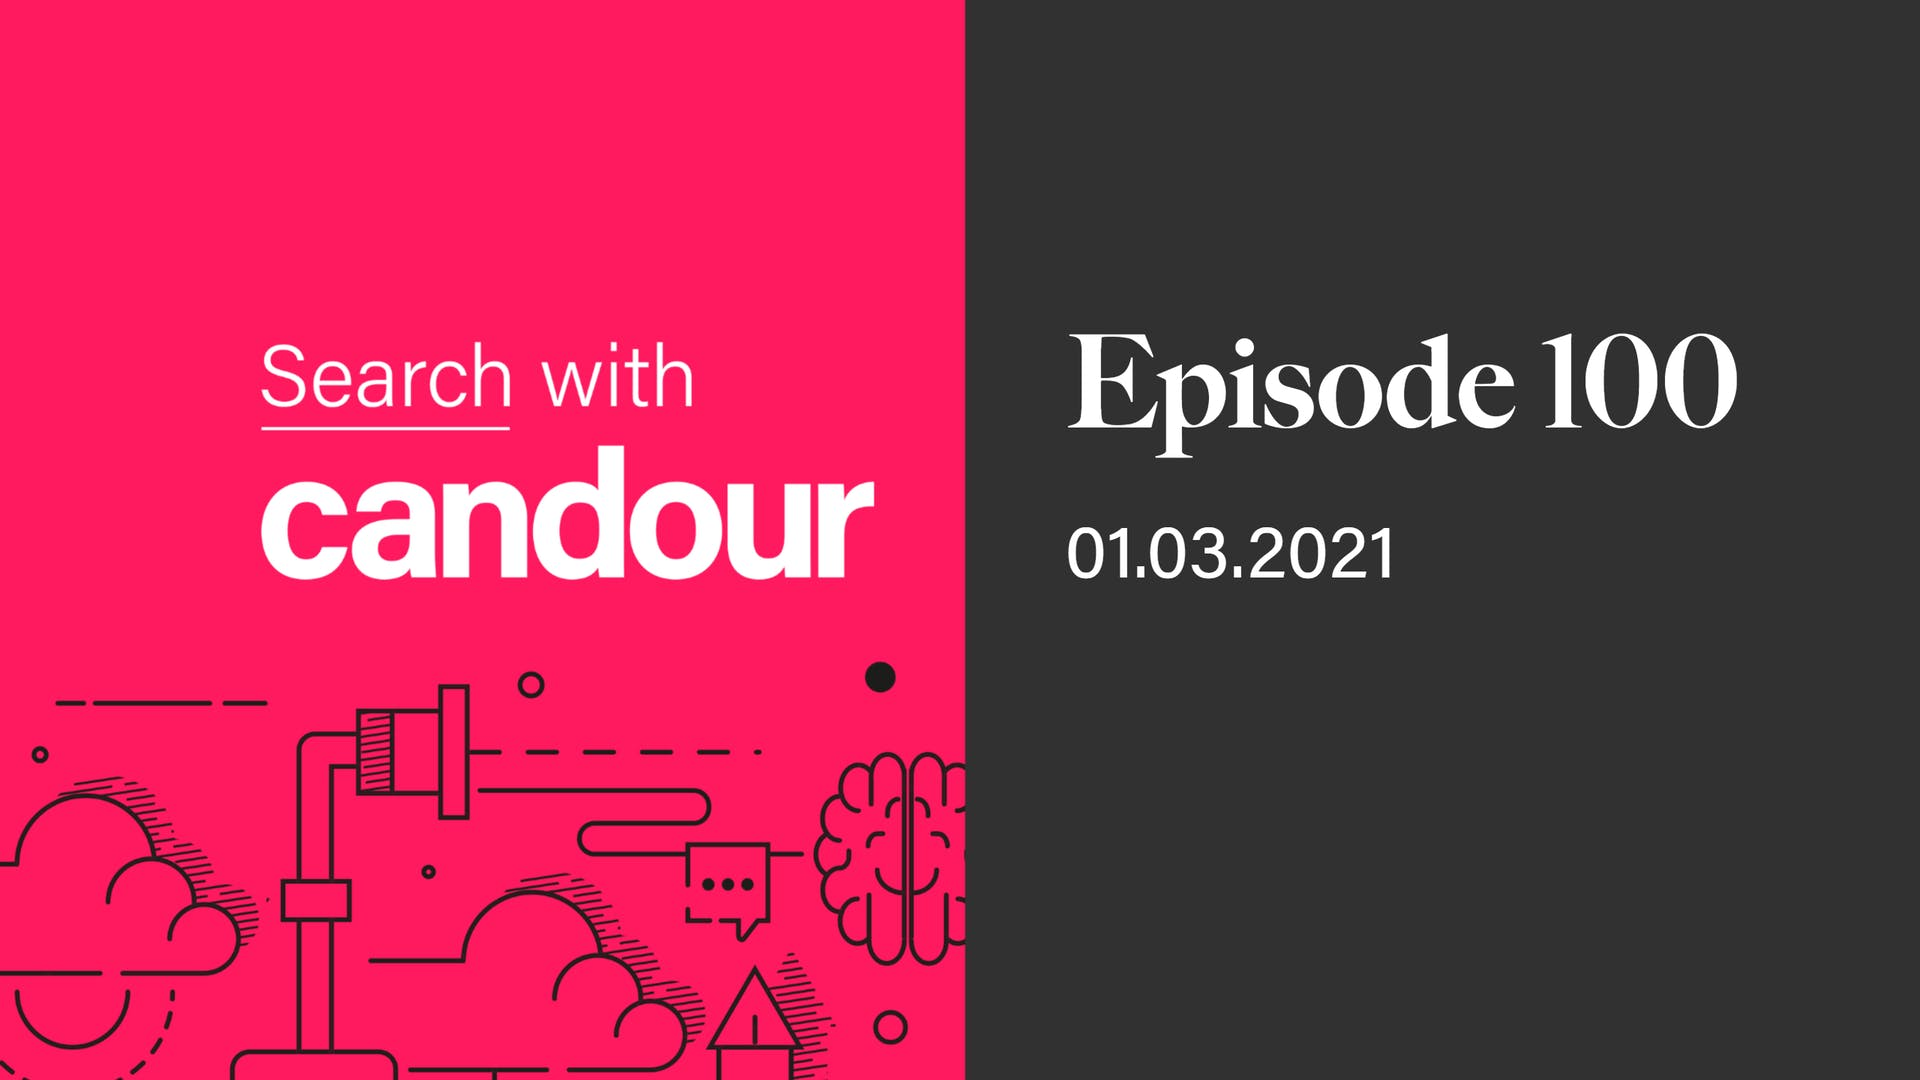 Episode 100 - Search with Candour